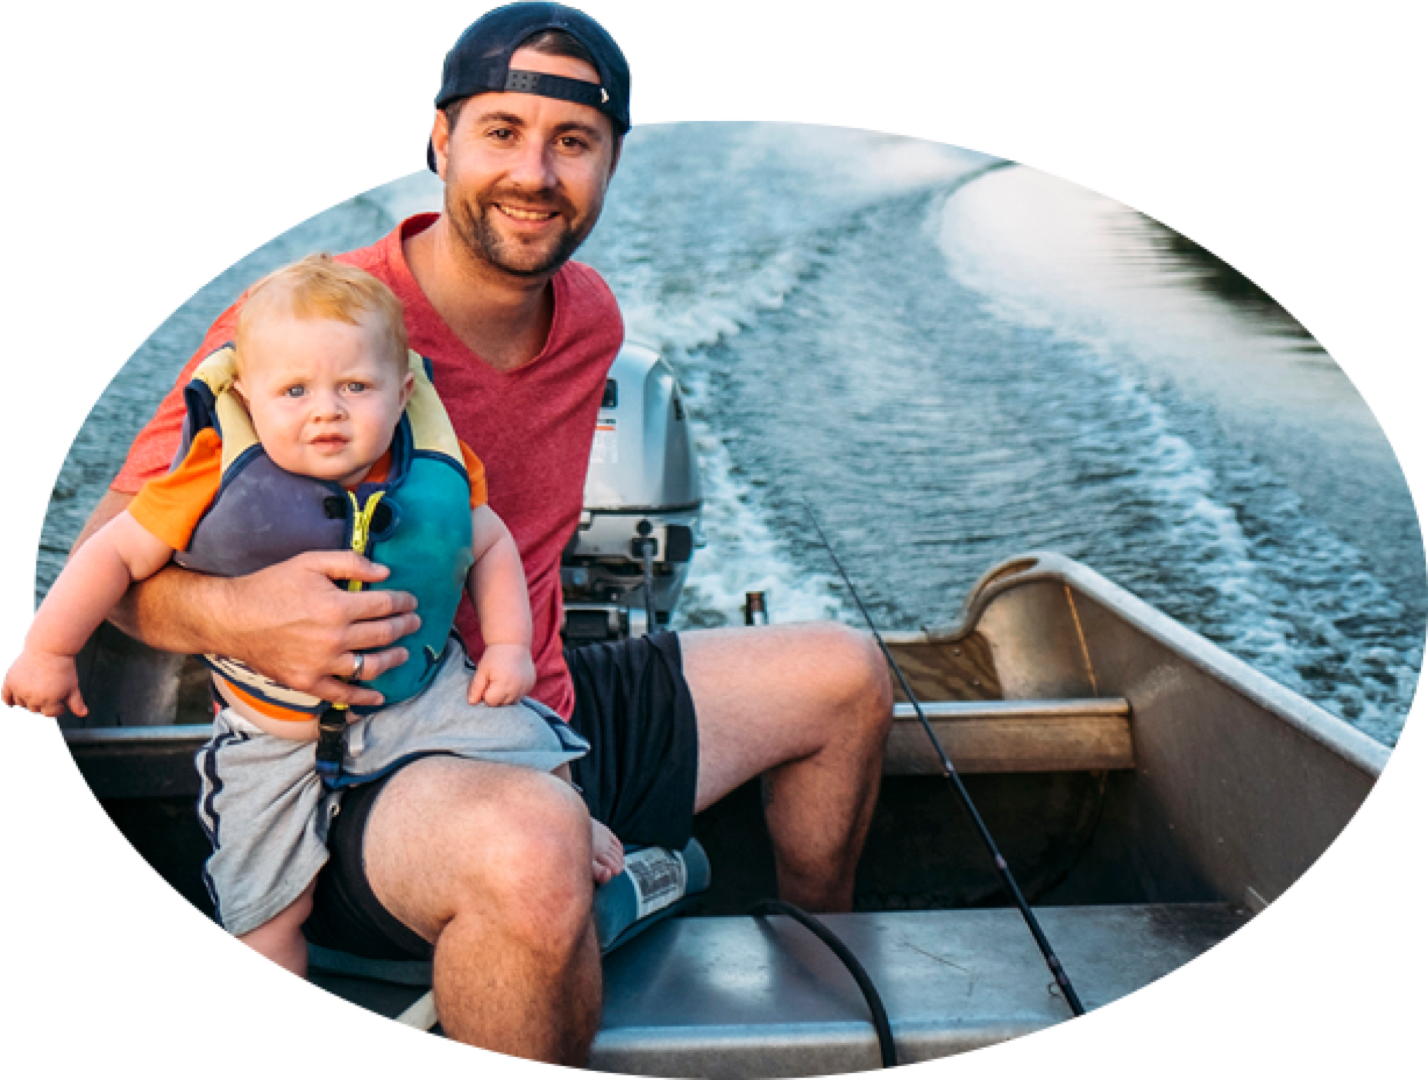 A bearded young father and his life-jacket-wearing toddler motor across the water in a fishing boat, one of the many types covered by State Farm boat insurance.